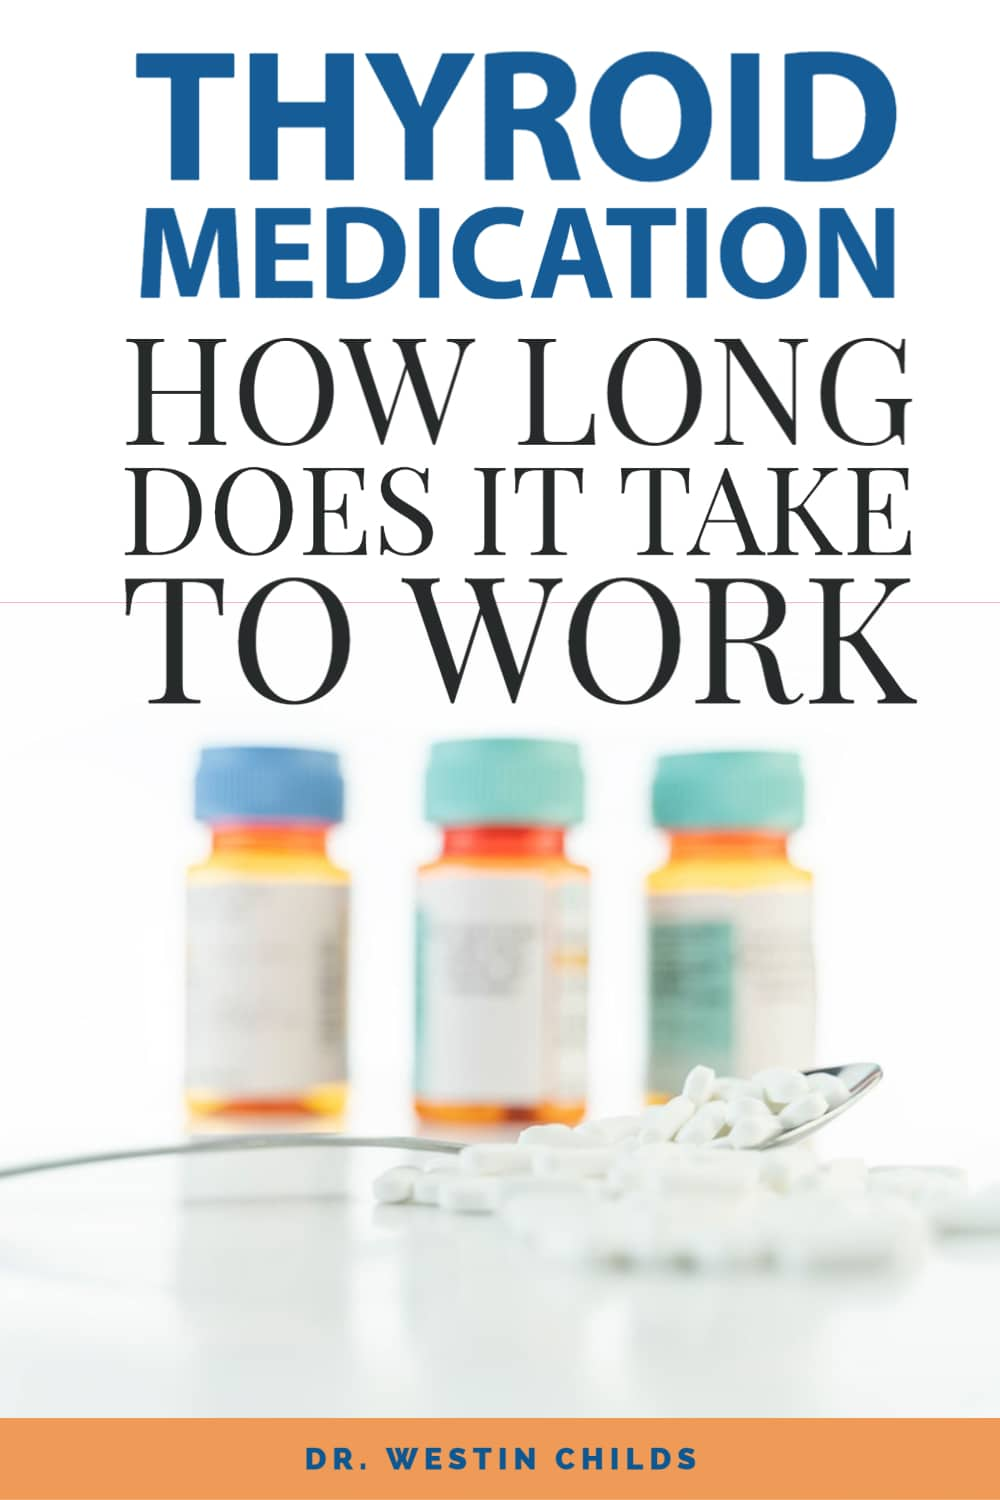 thyroid medication - how long does it take to work